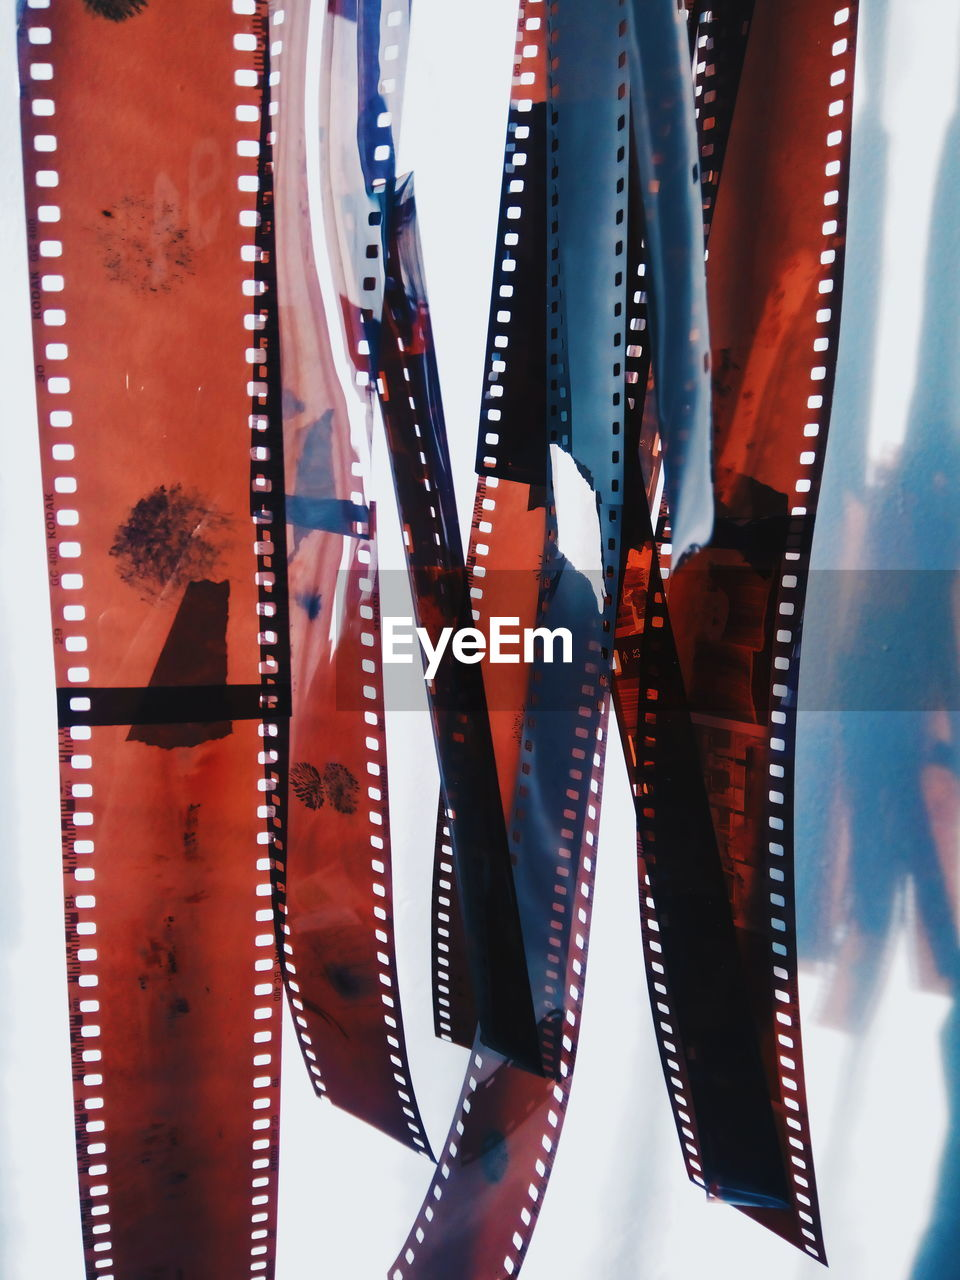 Close-up of film reels hanging against white background